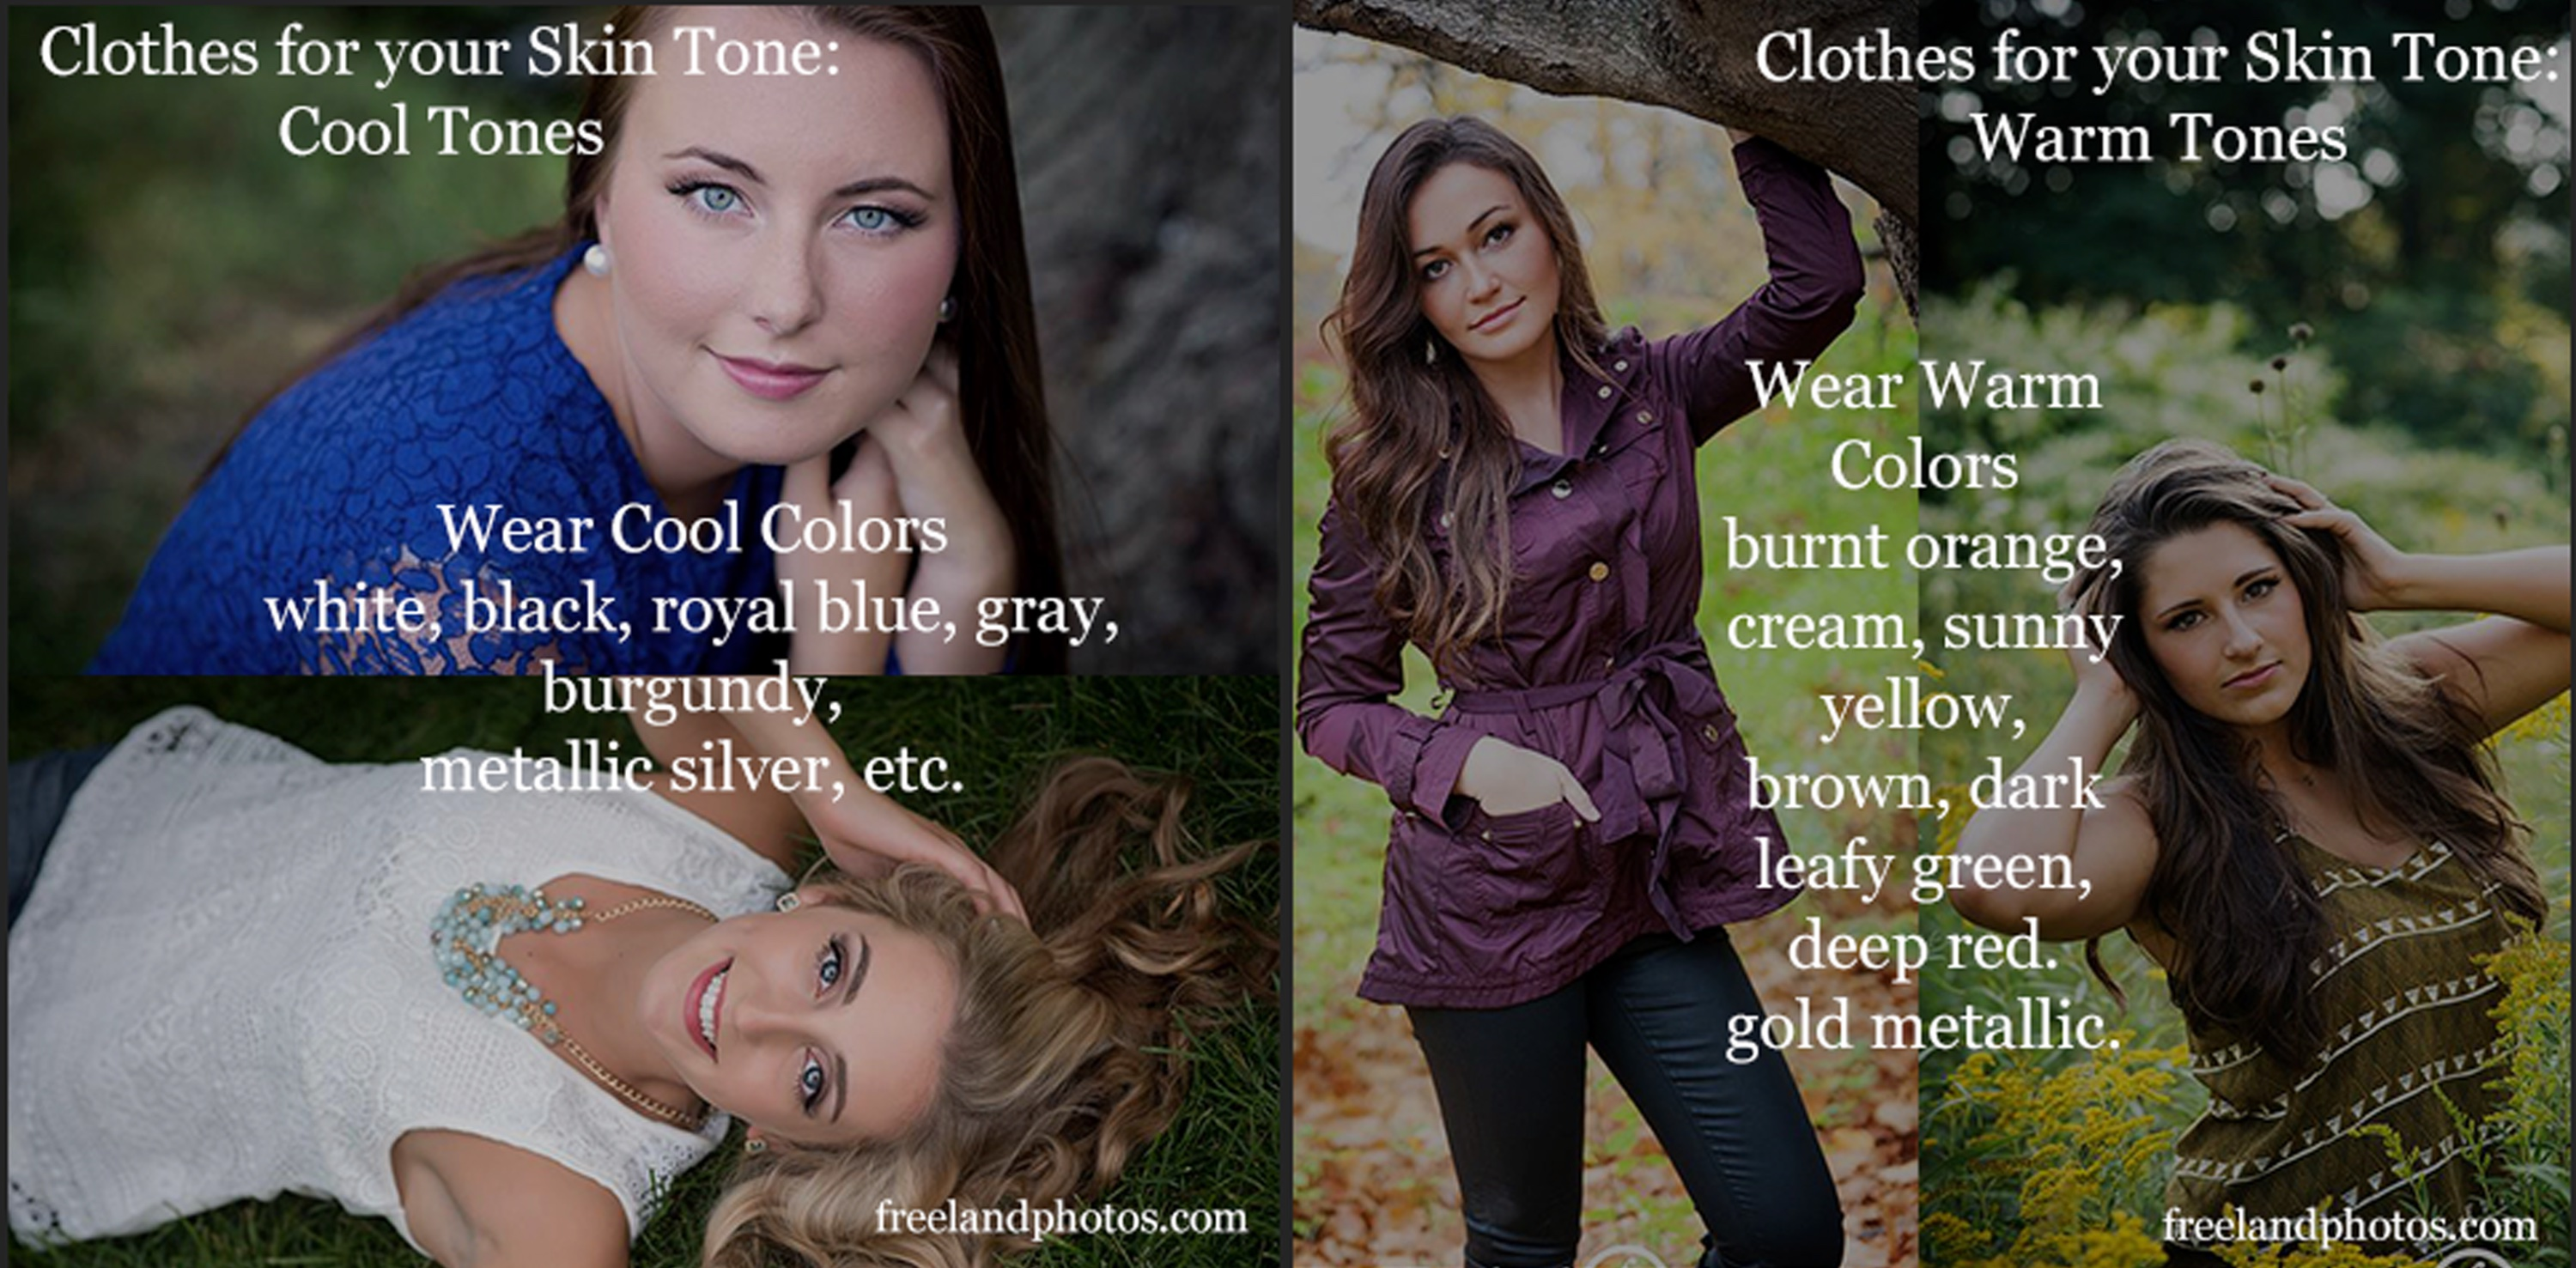 How to look best in your portraits- Choosing colors for your skin tone